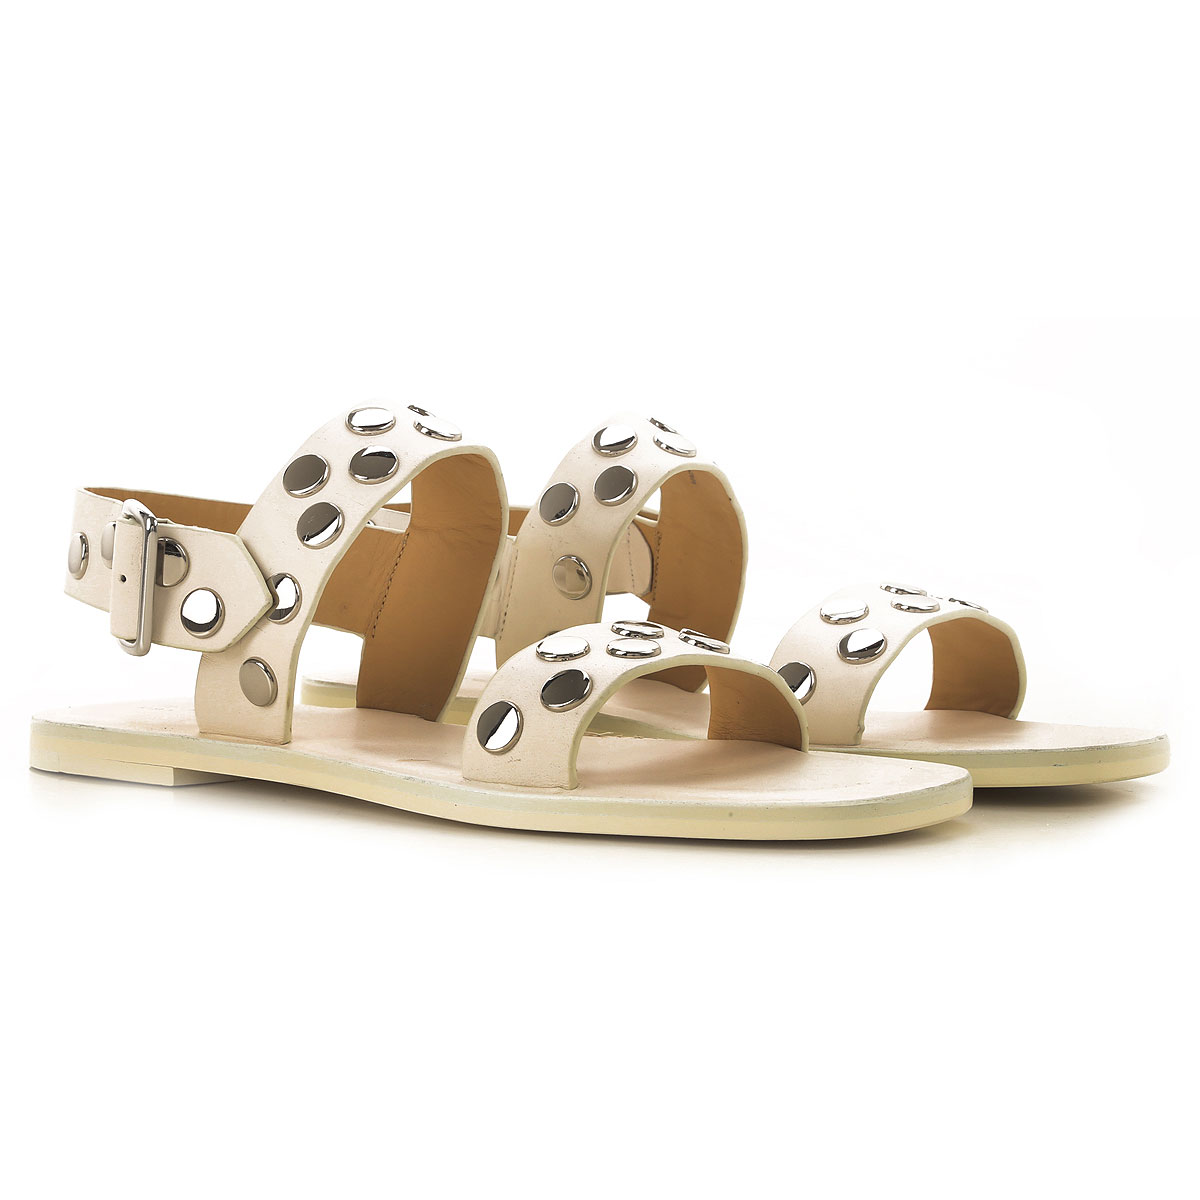 Jil Sander Sandals for Women On Sale in Outlet, White, Leather, 2019, 10 7 8 9